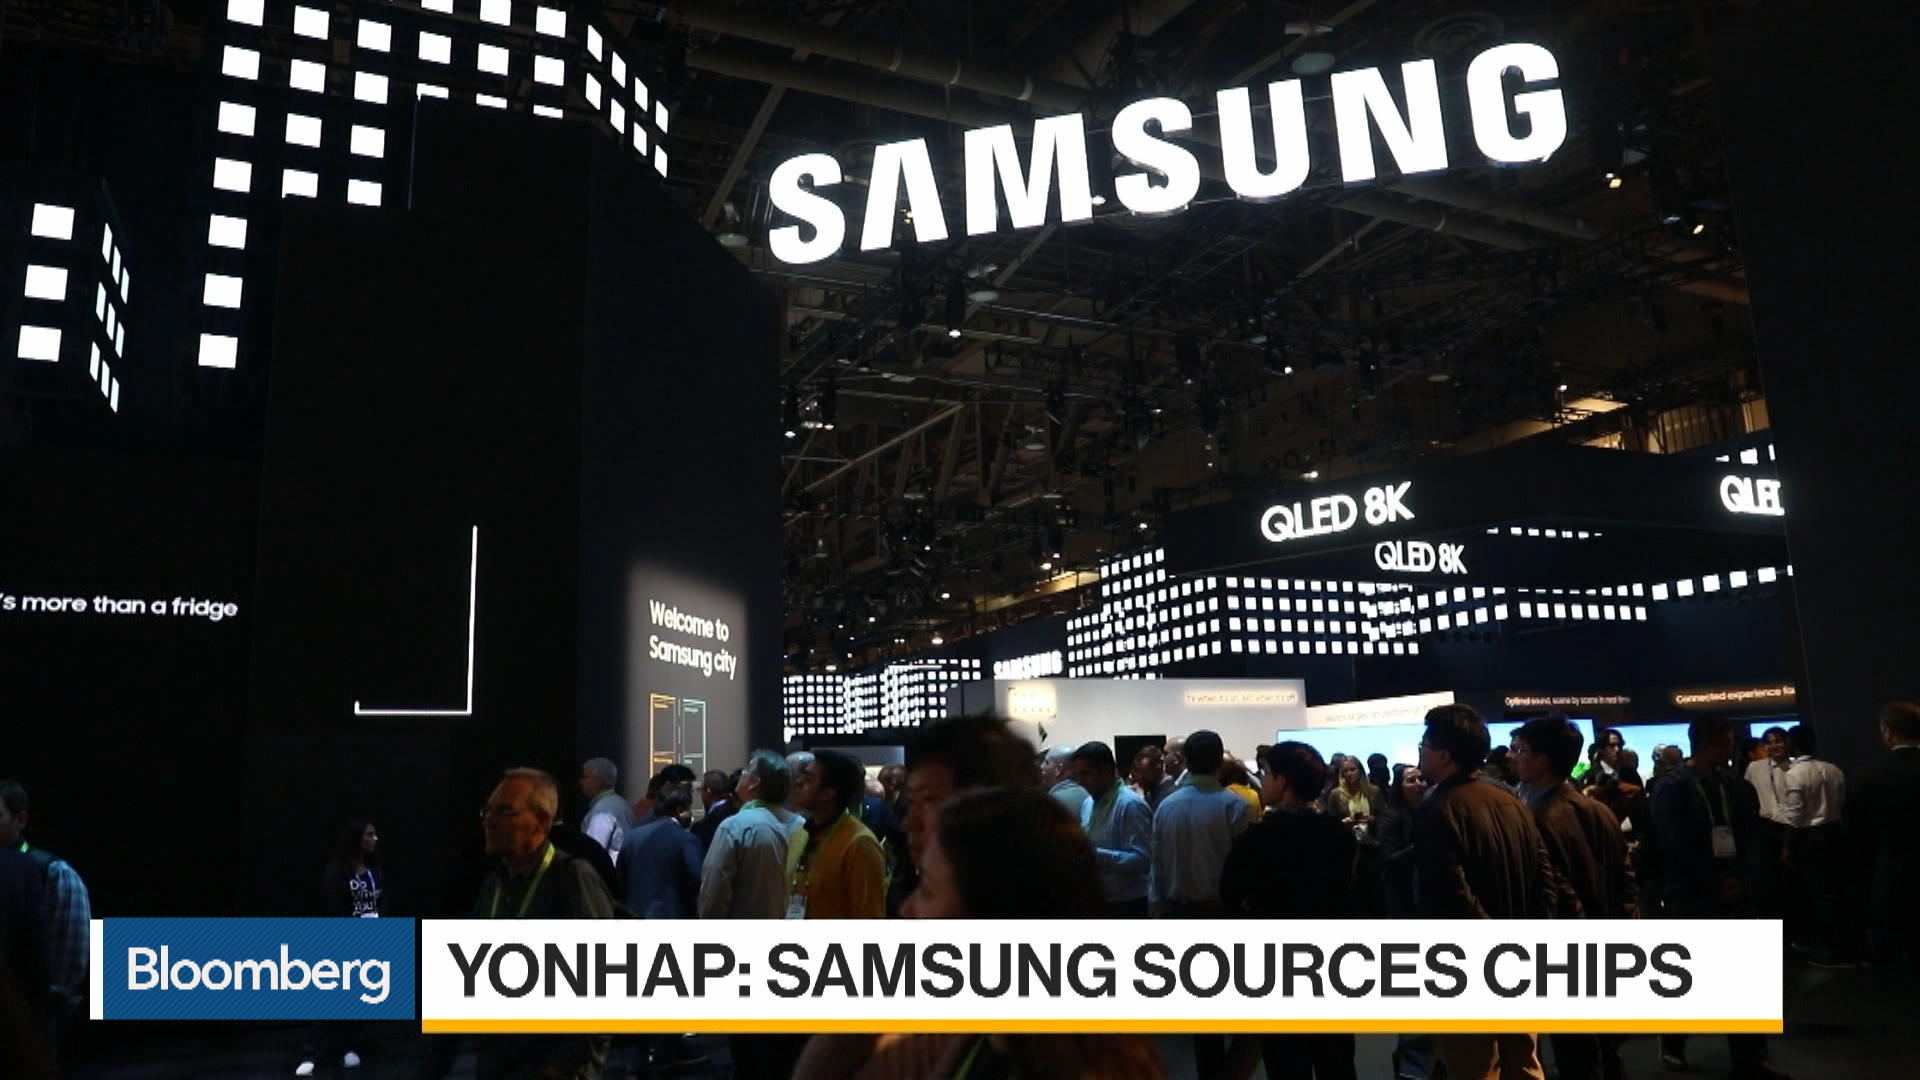 Samsung Secures Emergency Supply of Key Materials, Yonhap Reports